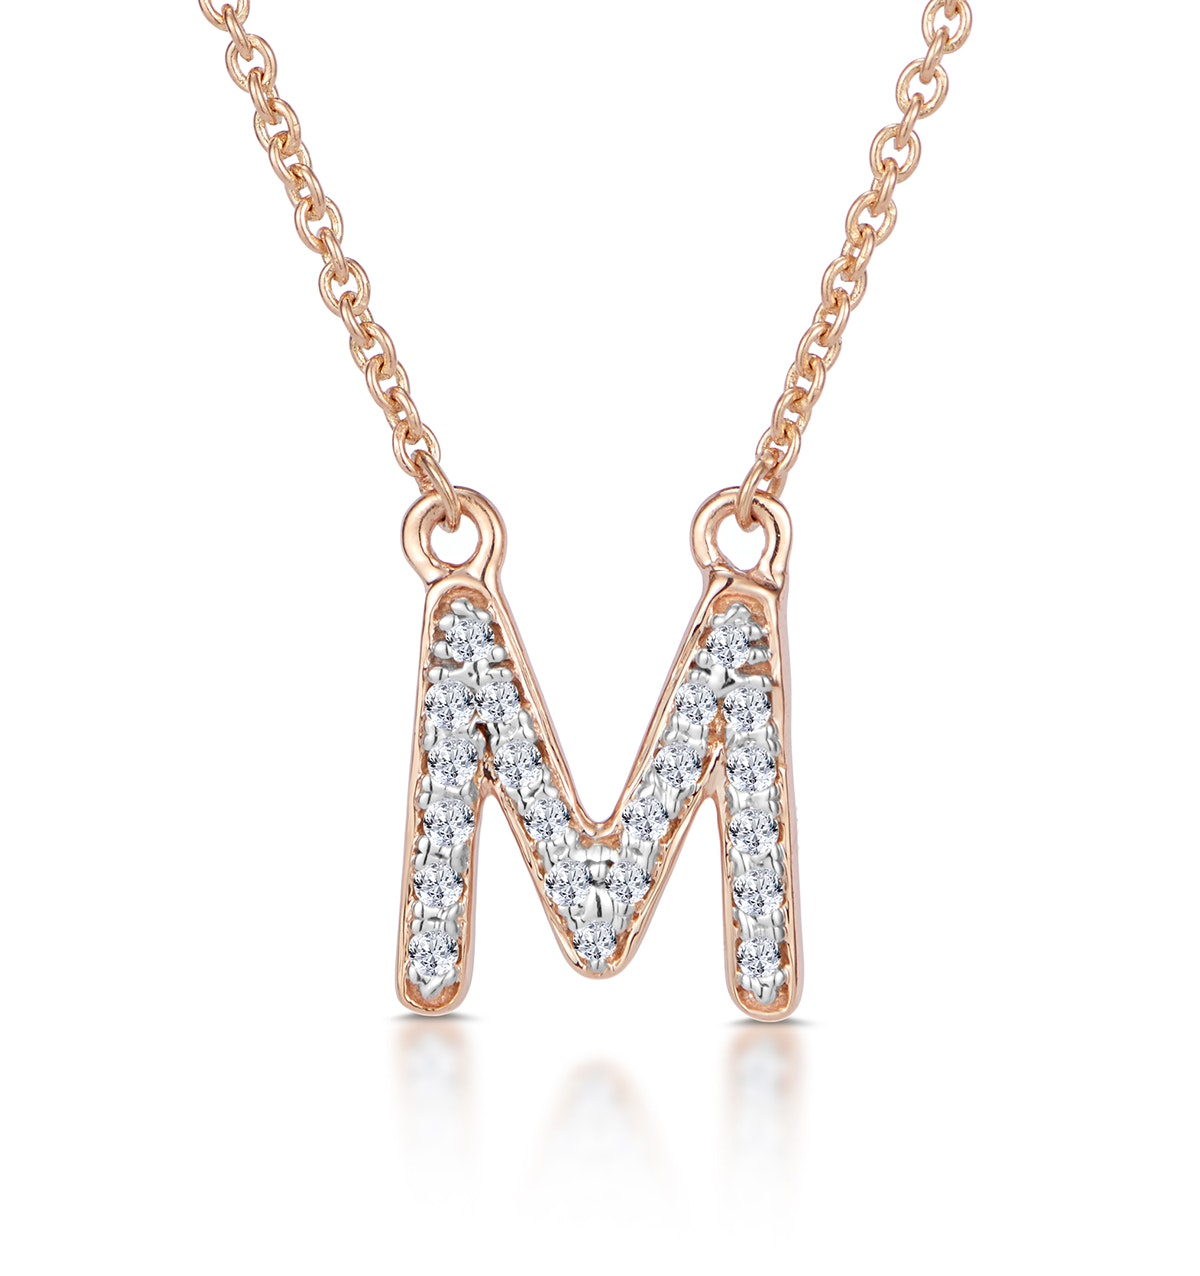 Initial 'M' Necklace Diamond Encrusted Pave Set in 9K Rose Gold